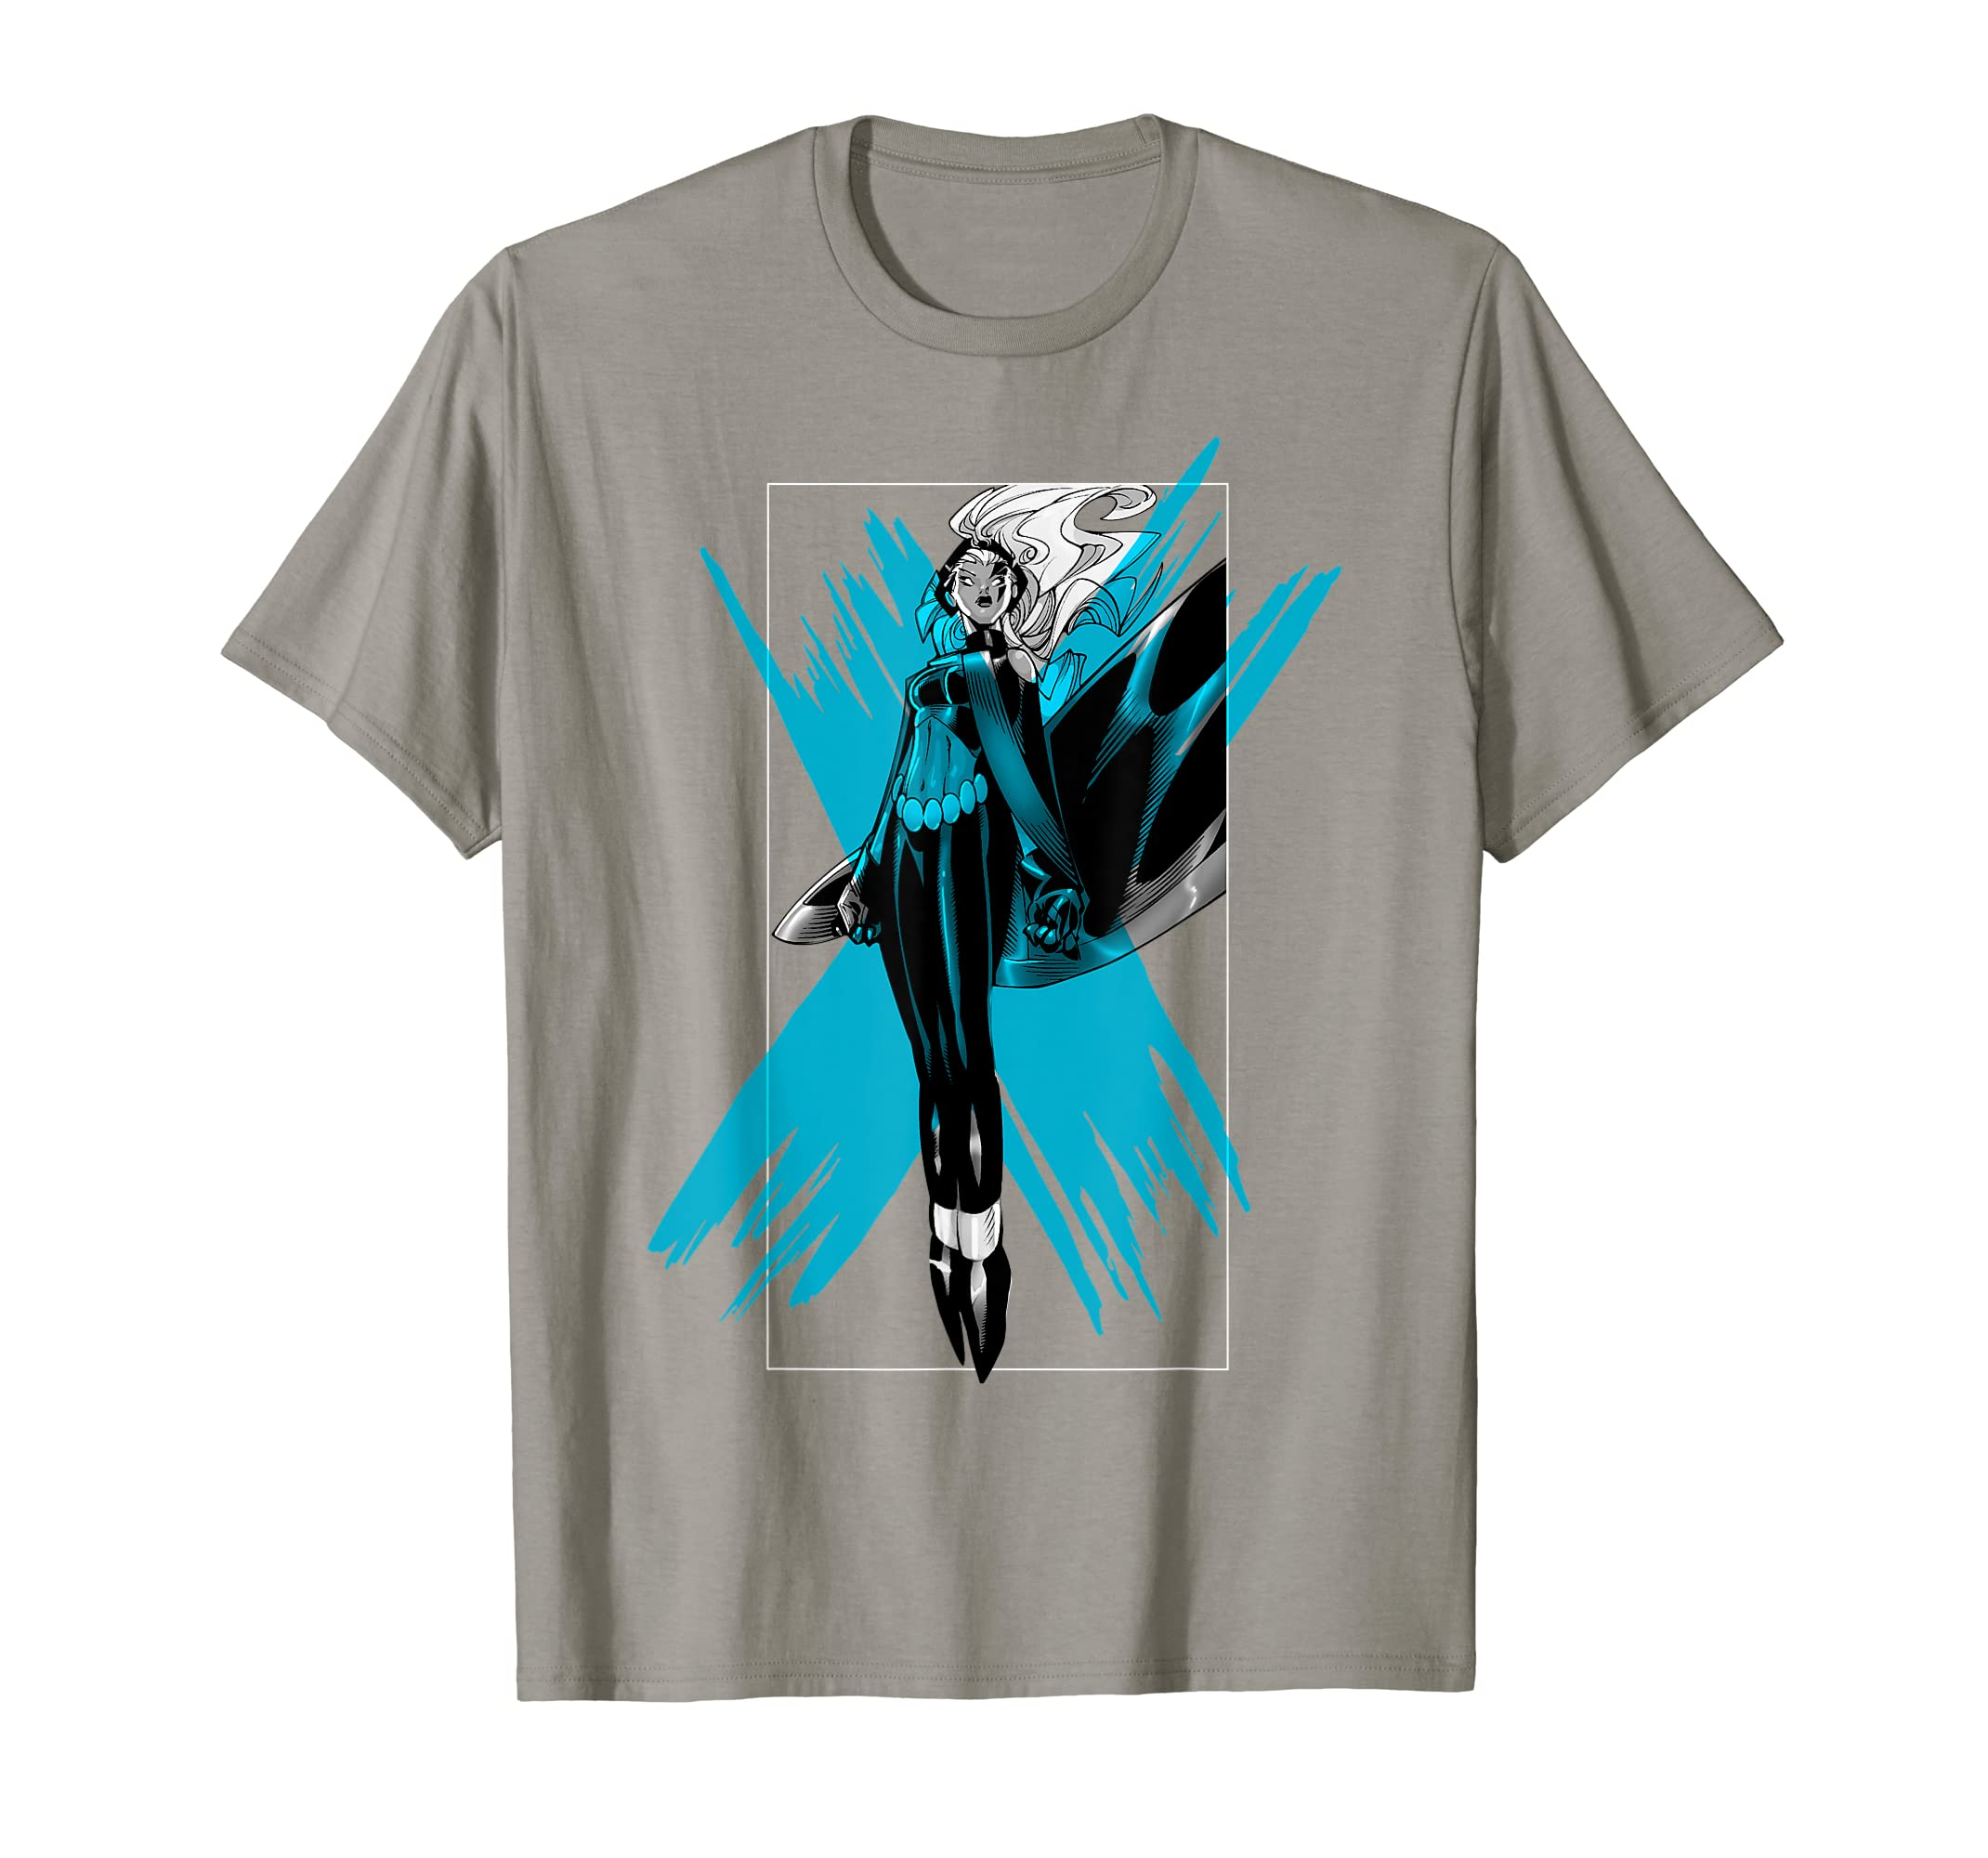 c7289e9b Amazon.com: Marvel X-Men Storm Color Pop Box Graphic T-Shirt: Clothing